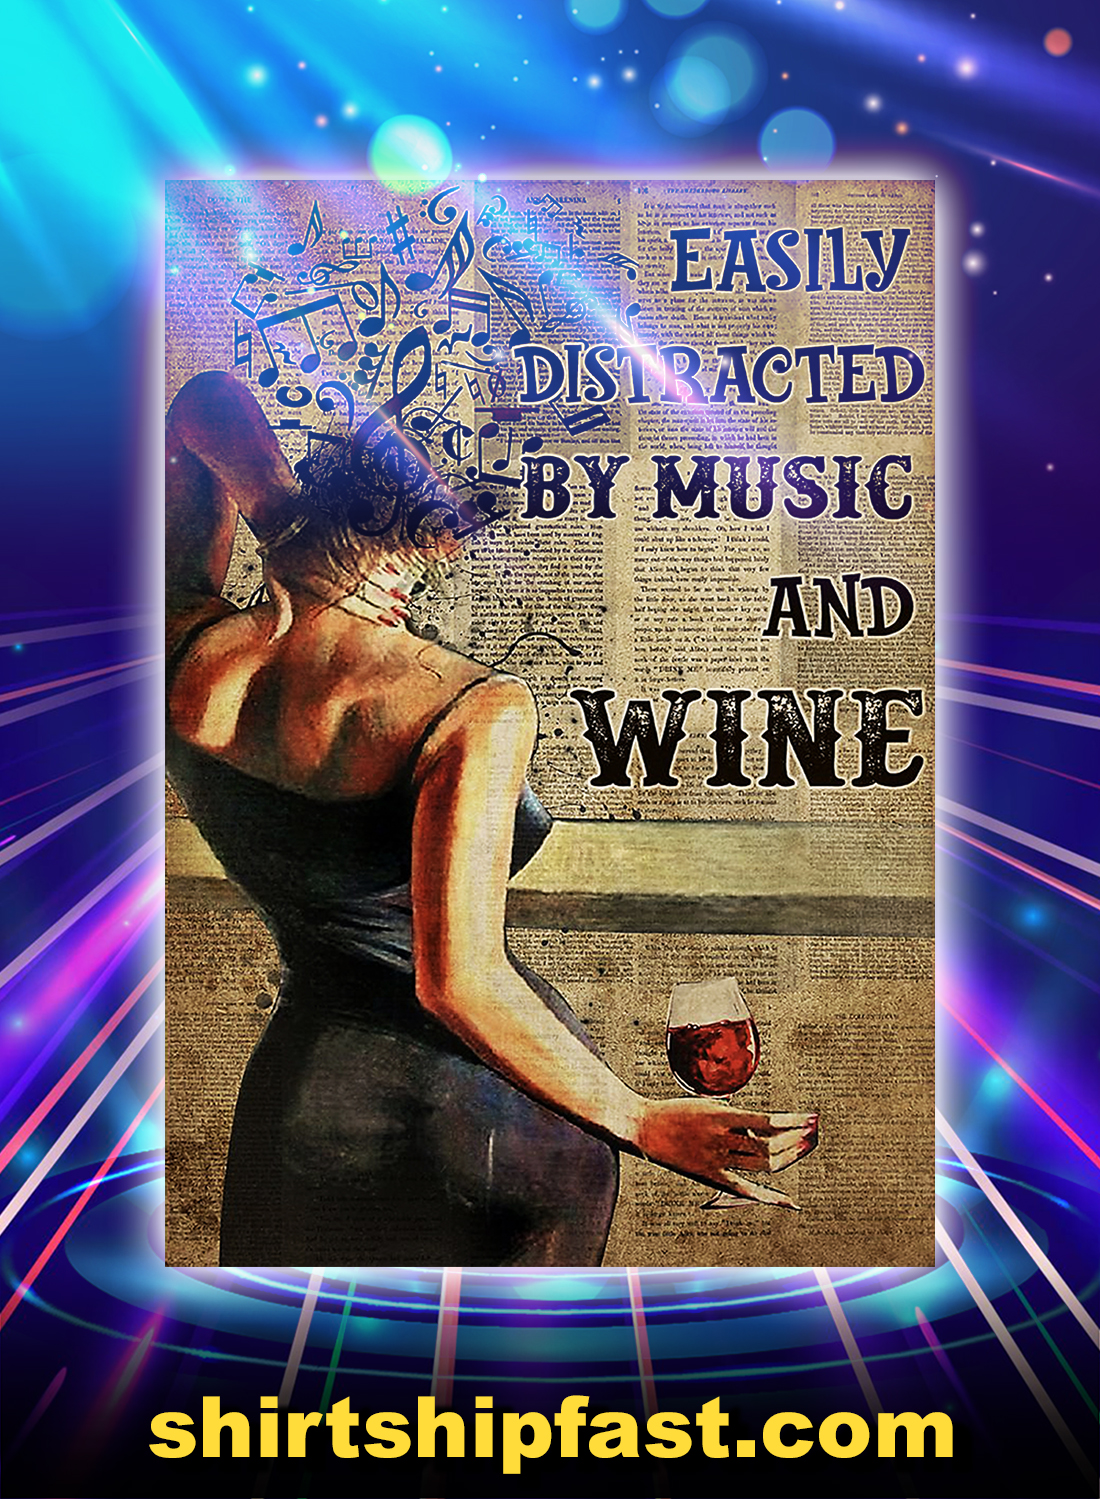 Girl easily distracted by music and wine poster - A4